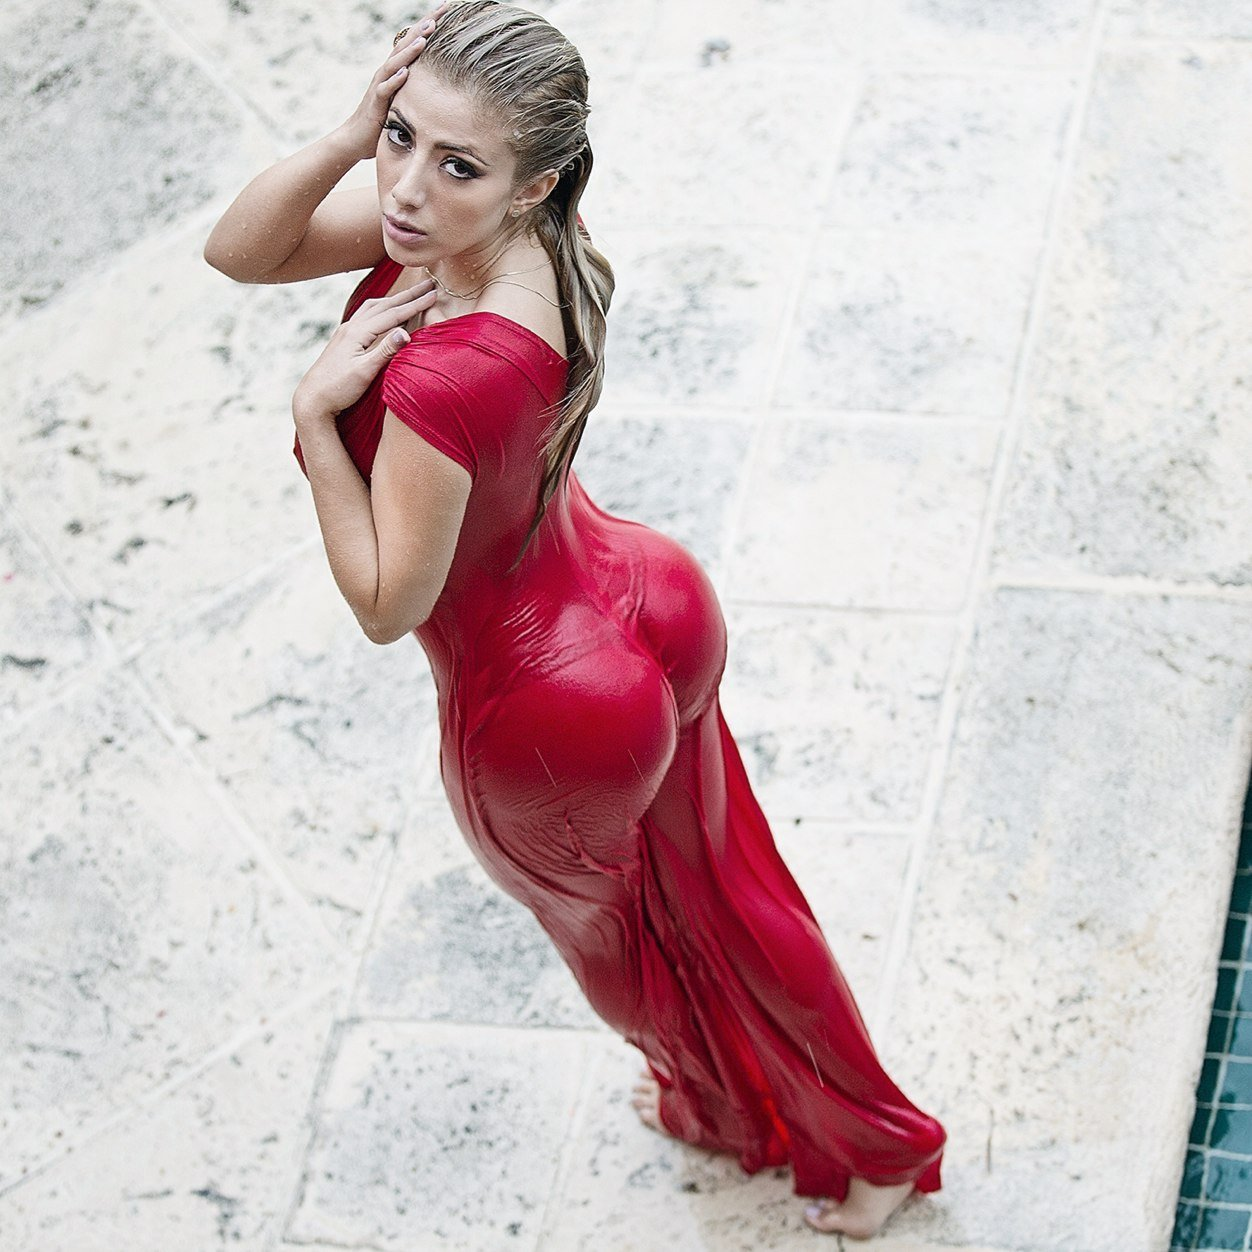 Valeria Orsin naked (31 fotos), images Porno, YouTube, underwear 2020